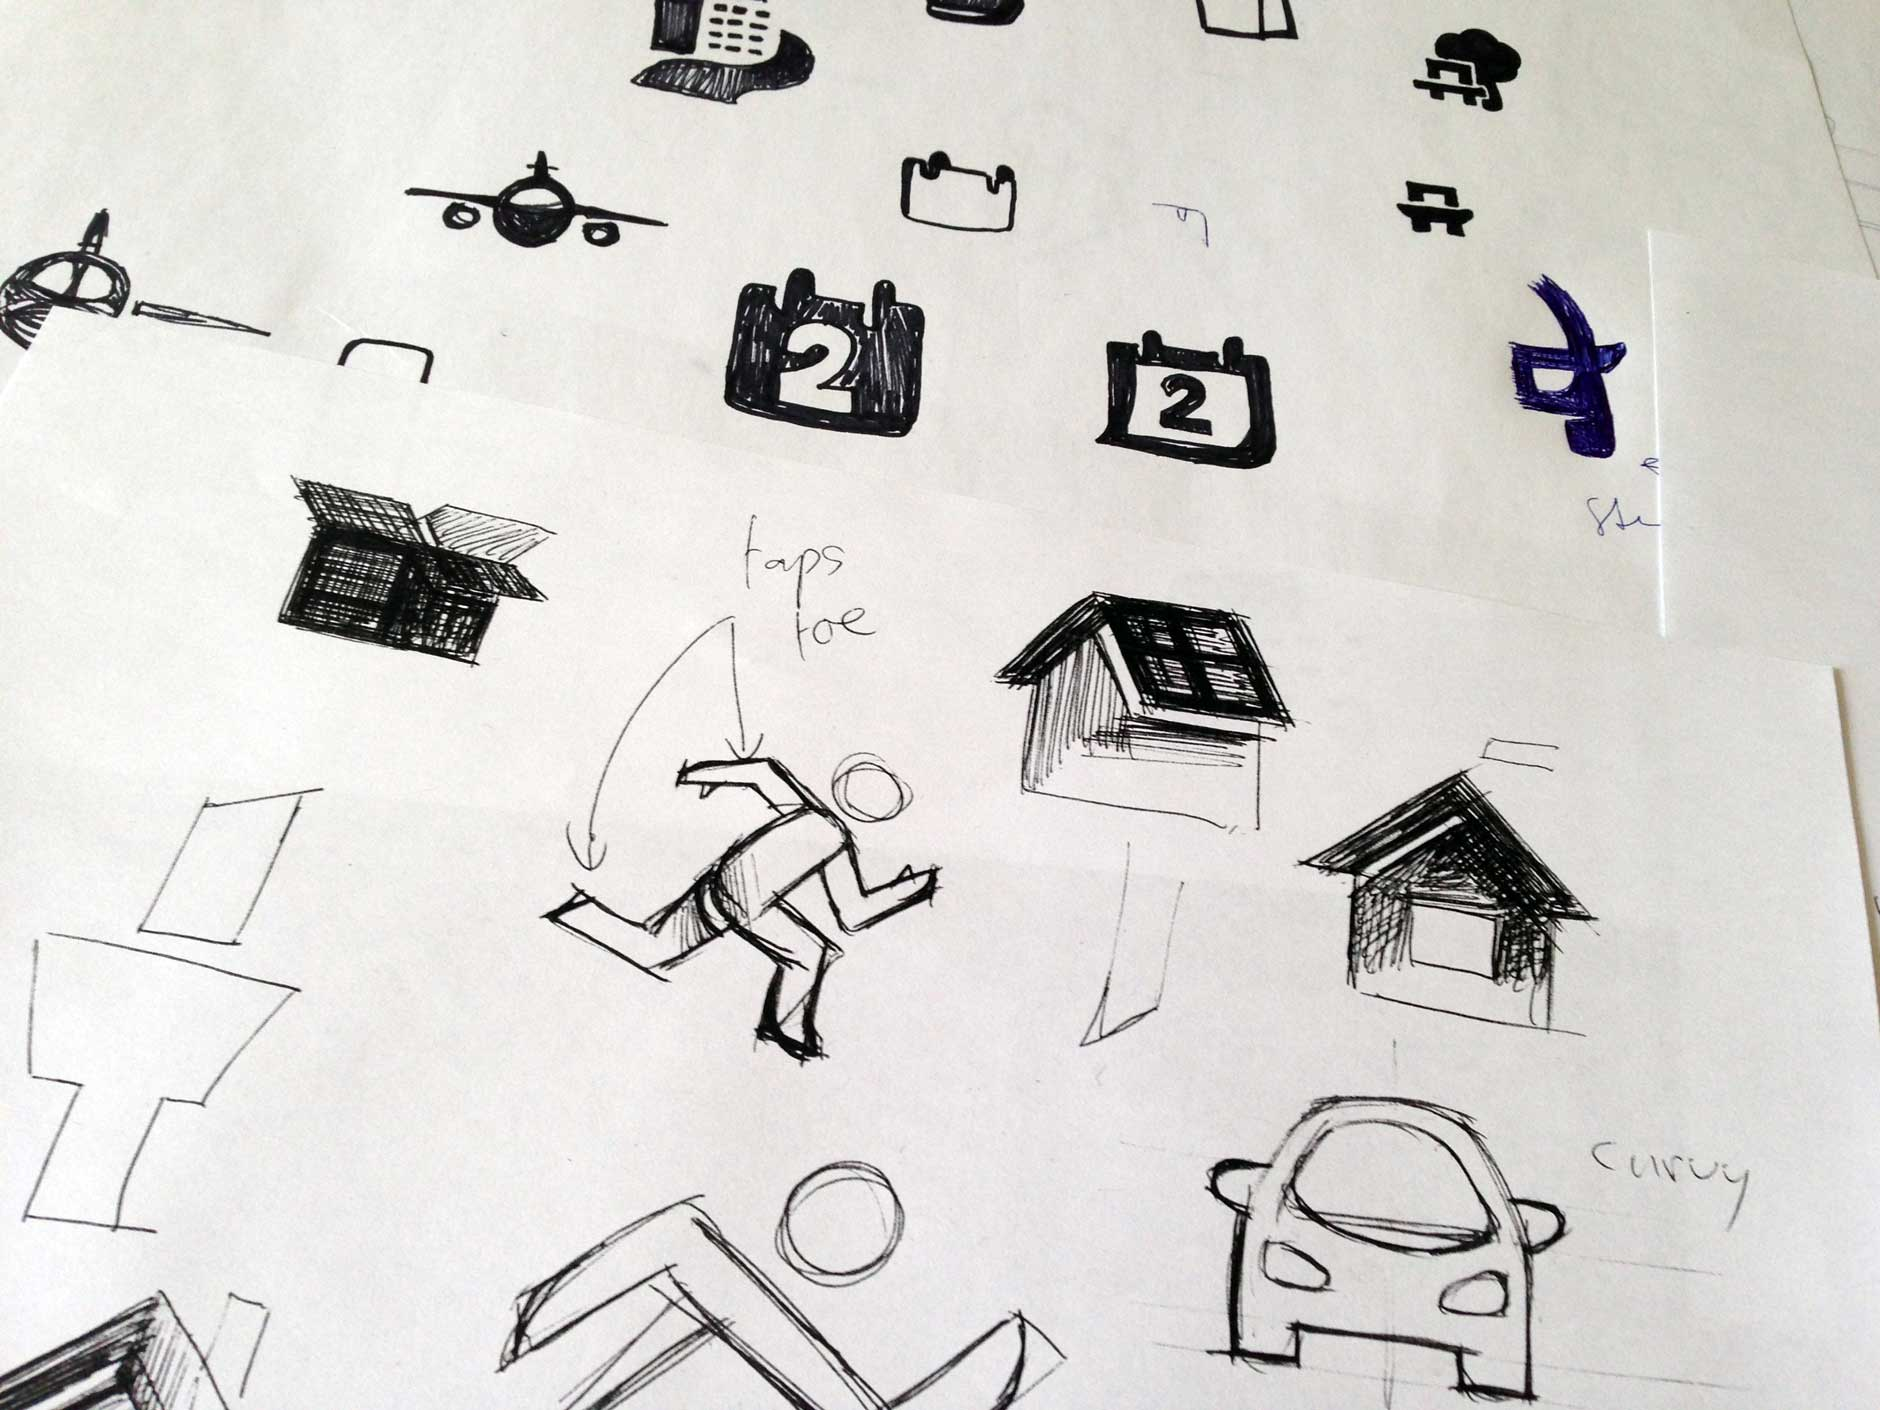 First sketches of the icon style design for the Dutch Government (Rijksoverheid) by #dutchicon.